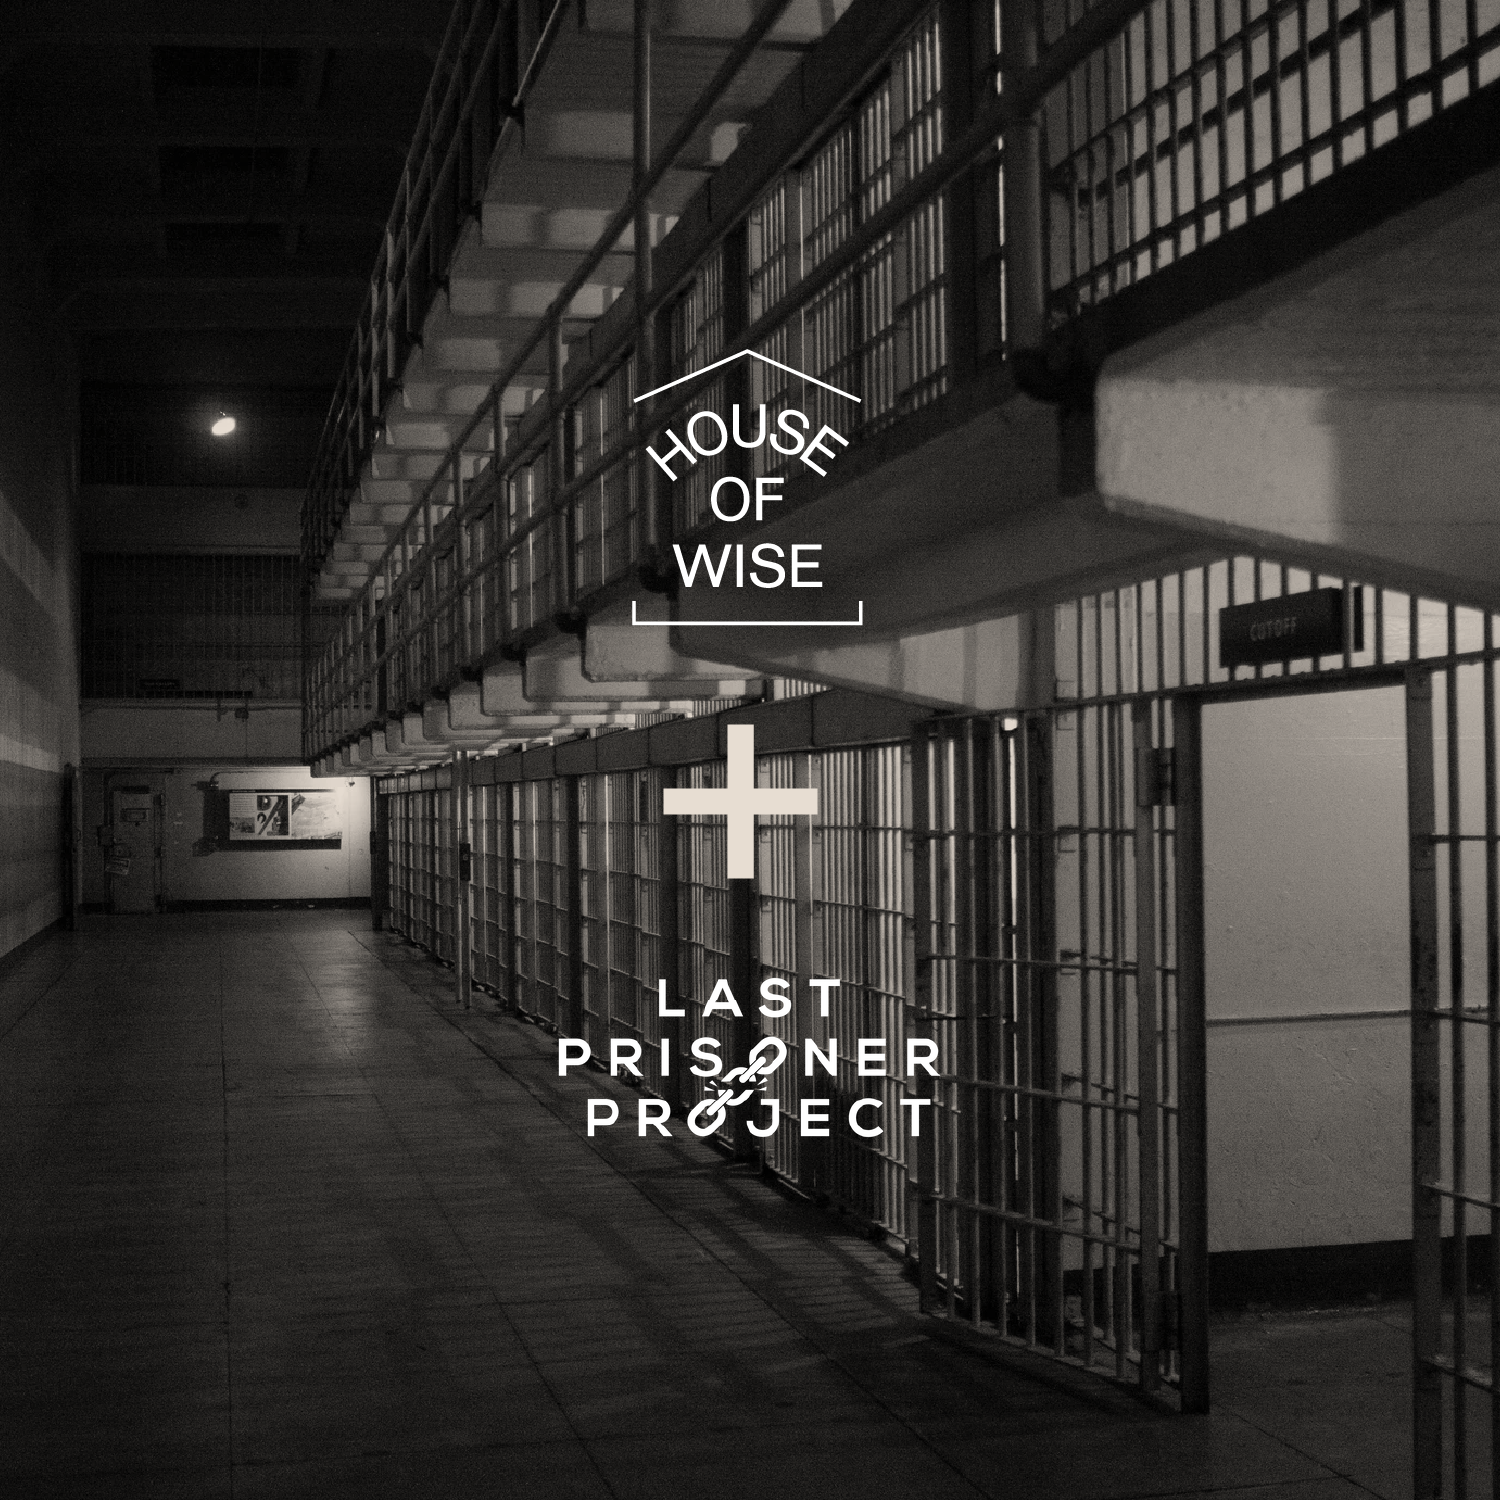 House of Wise + Last Prisoner Project